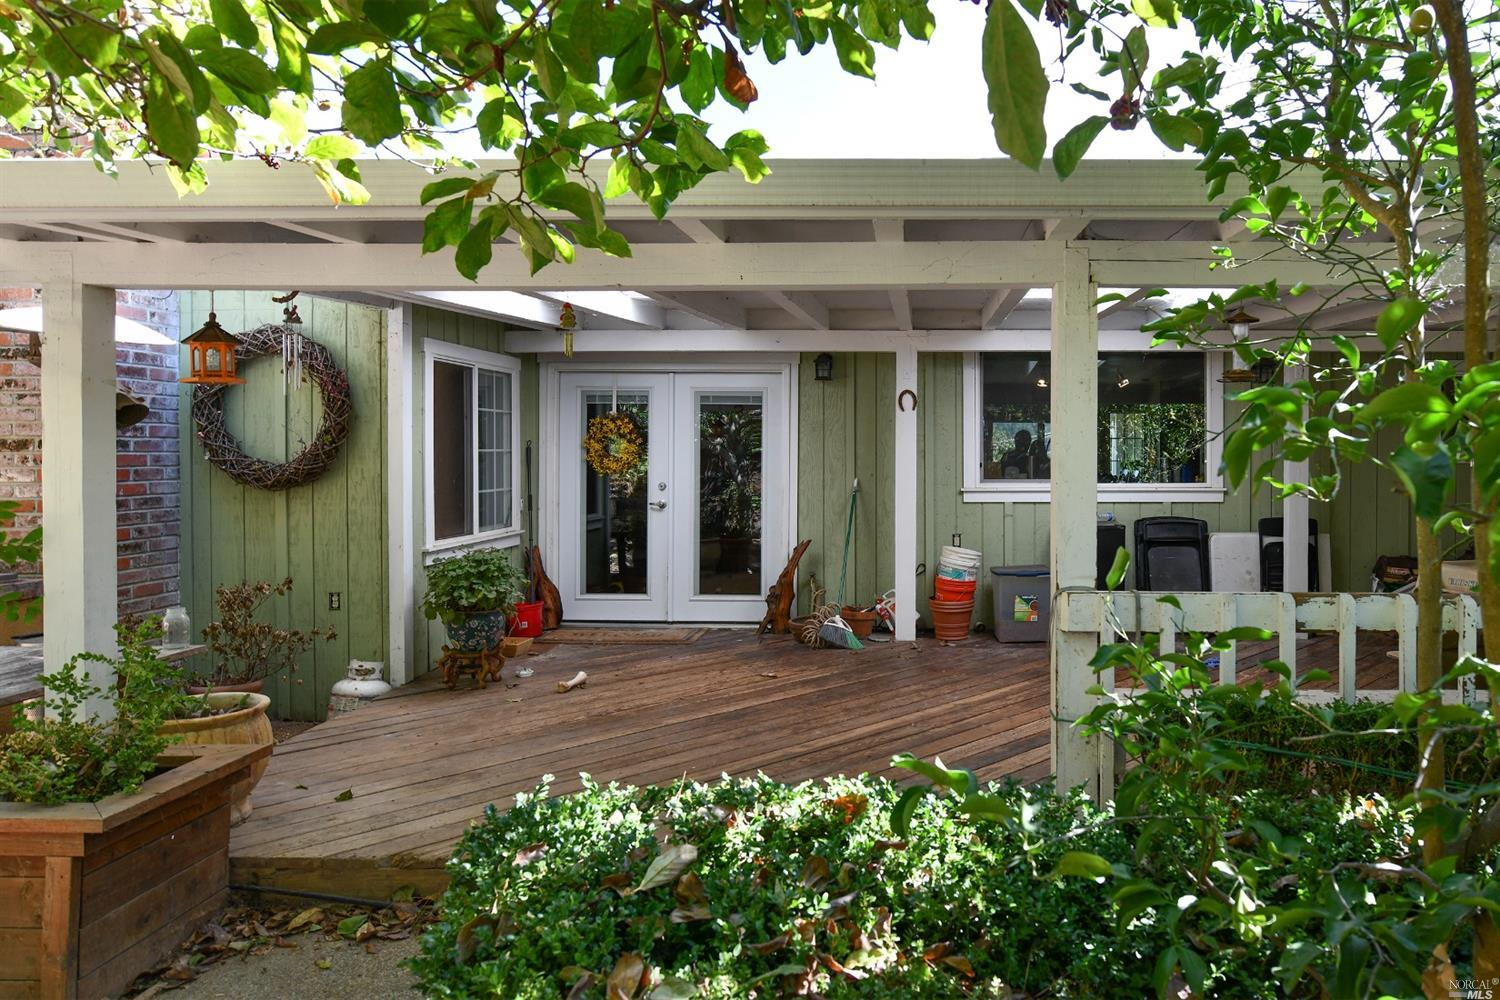 5-Bedroom House In Angwin